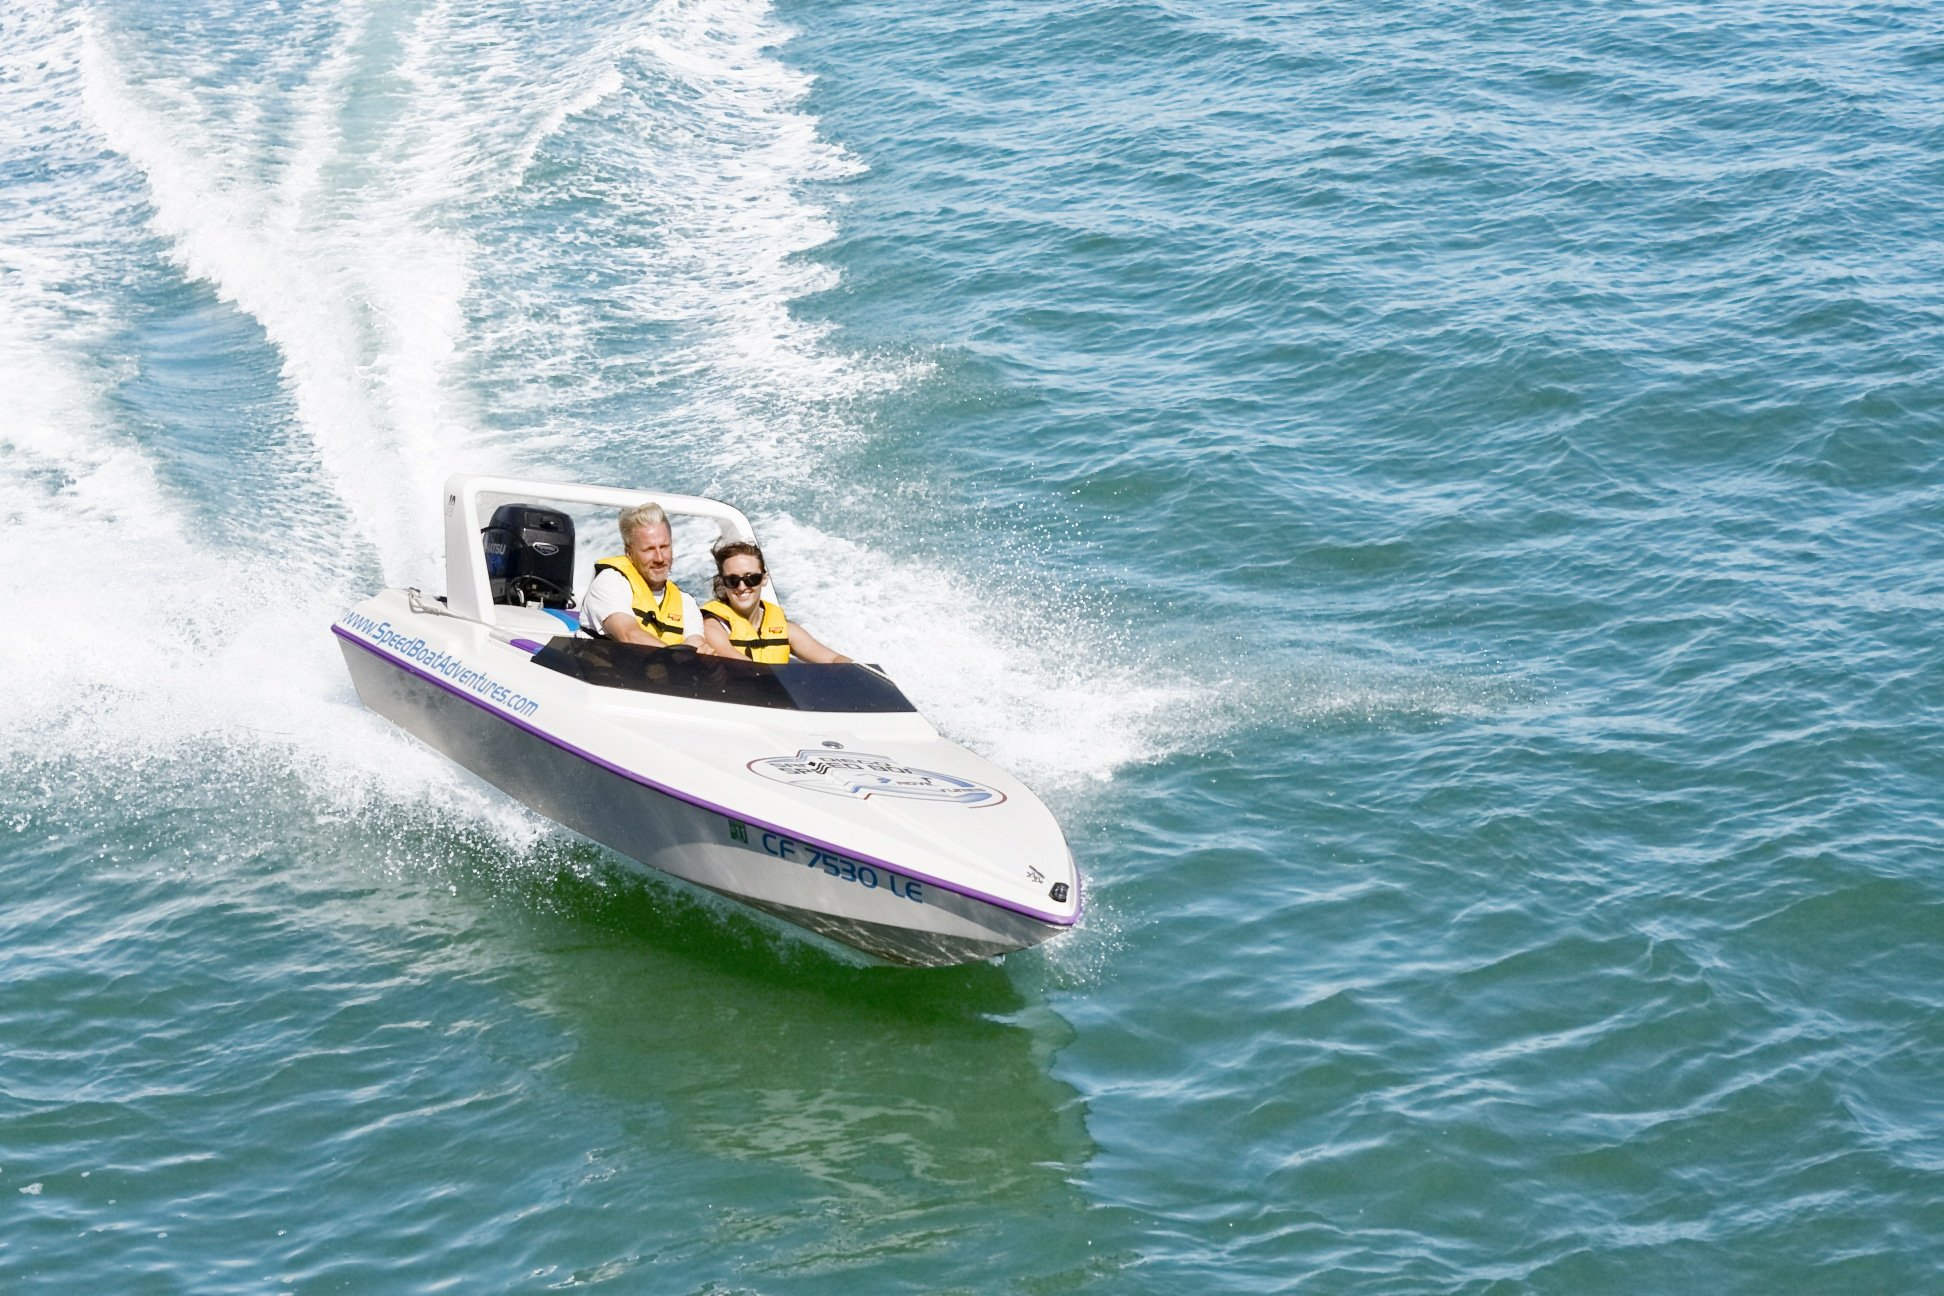 Two people drive the mini speedboat on a tour.